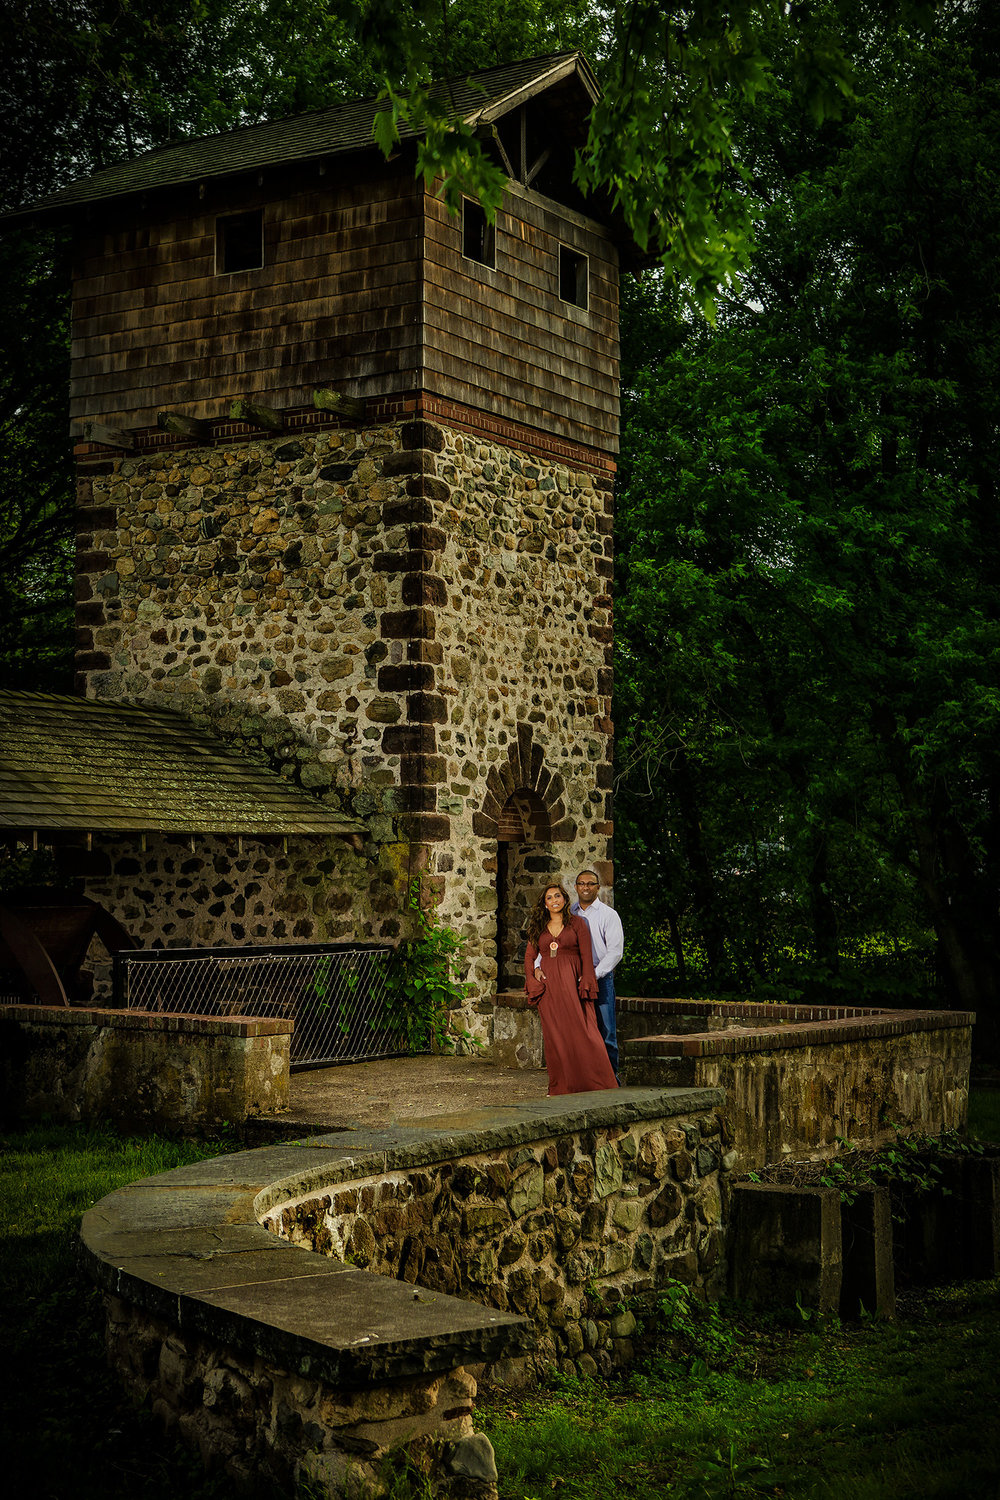 bergen_county_new_jersey_engagement_photography_0018.jpg